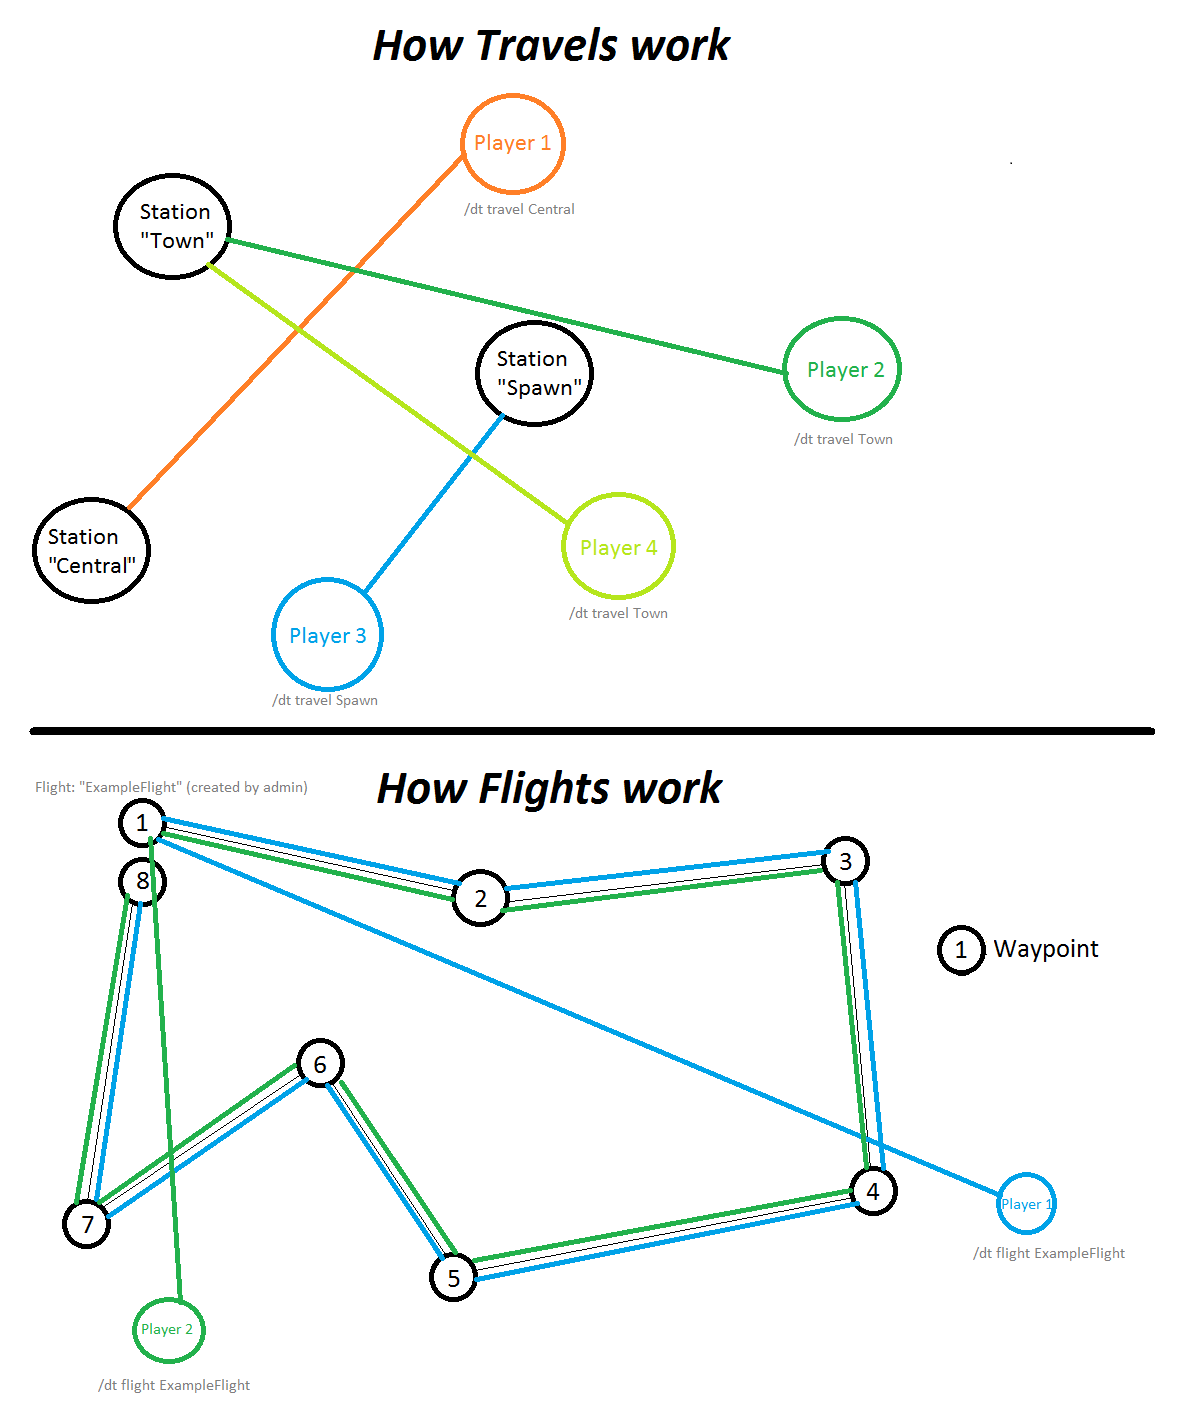 Figure: How flights and travels work